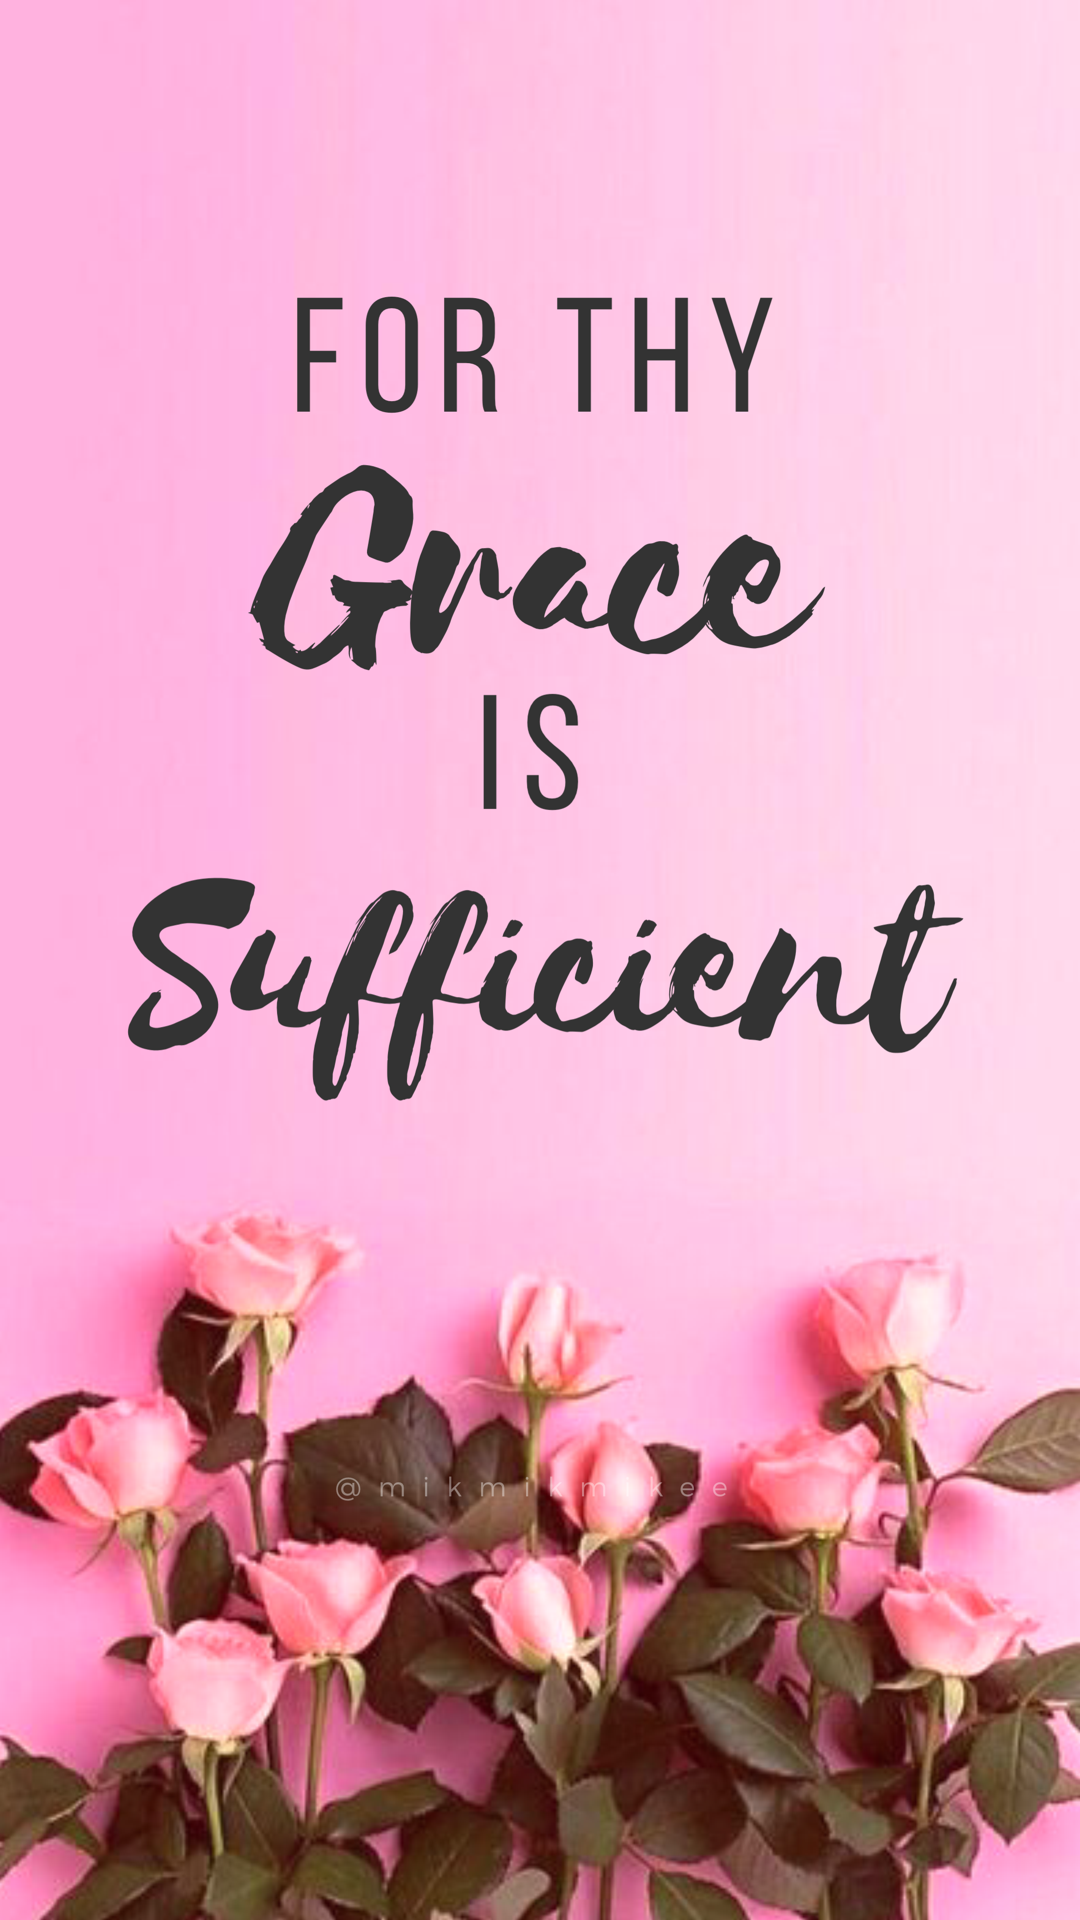 For Thy Grace Is Sufficient Floral Pink Wallpaper Lock Screen Home Screen By Mikmikmikee Pink Wallpaper Lock Screen Wallpaper Lock Screen Wallpaper Iphone